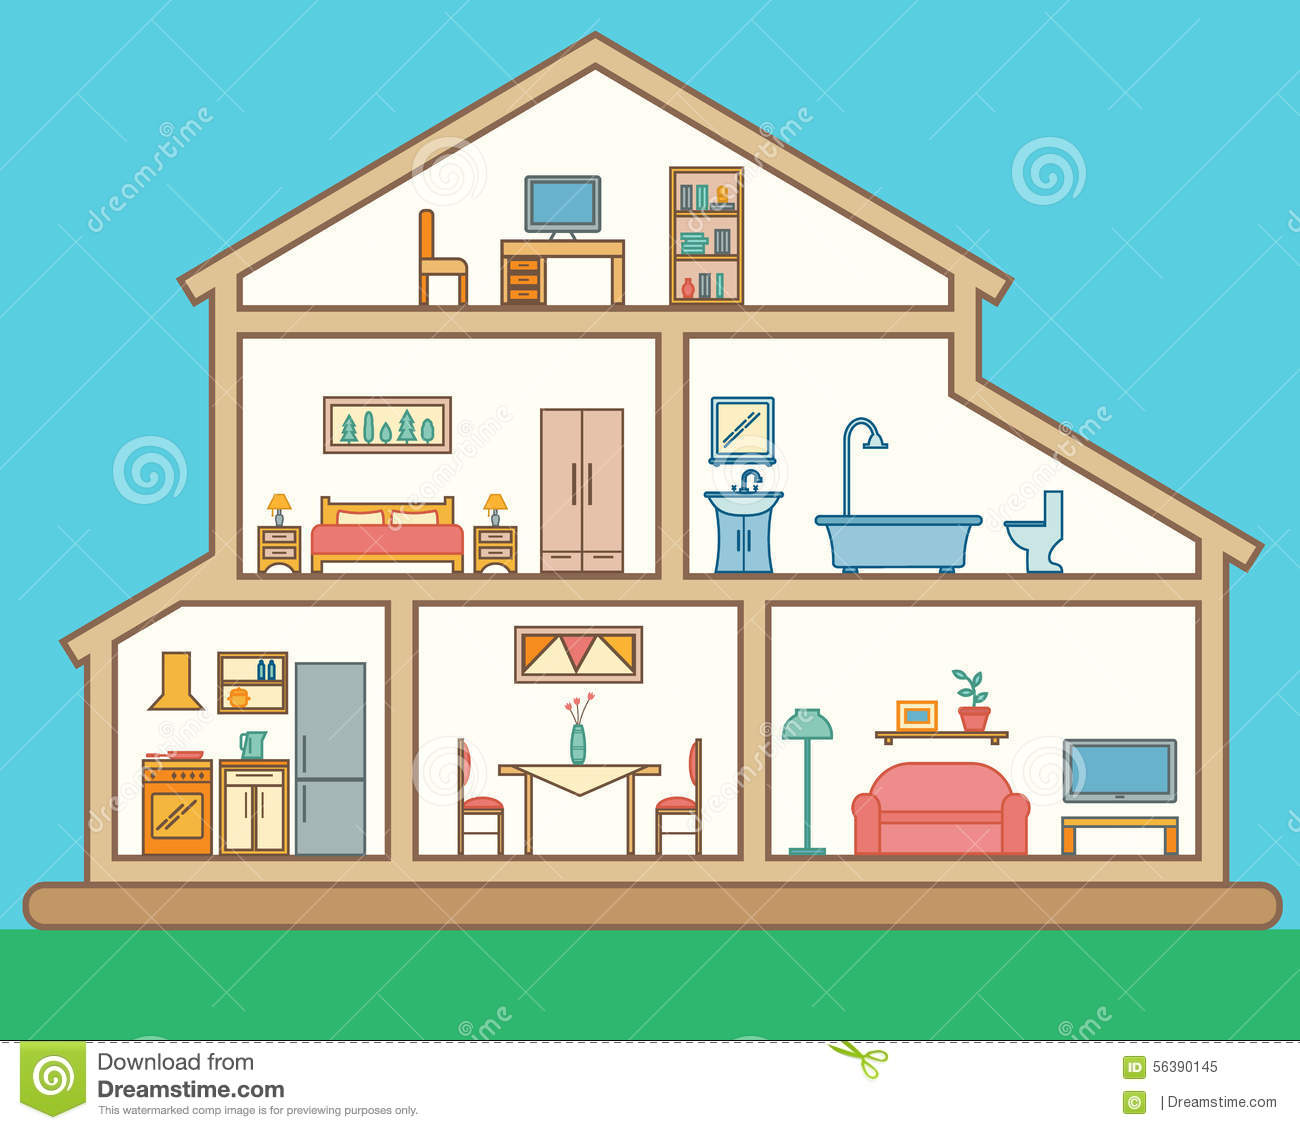 House in cut detailed modern house interior stock vector for House bedroom image